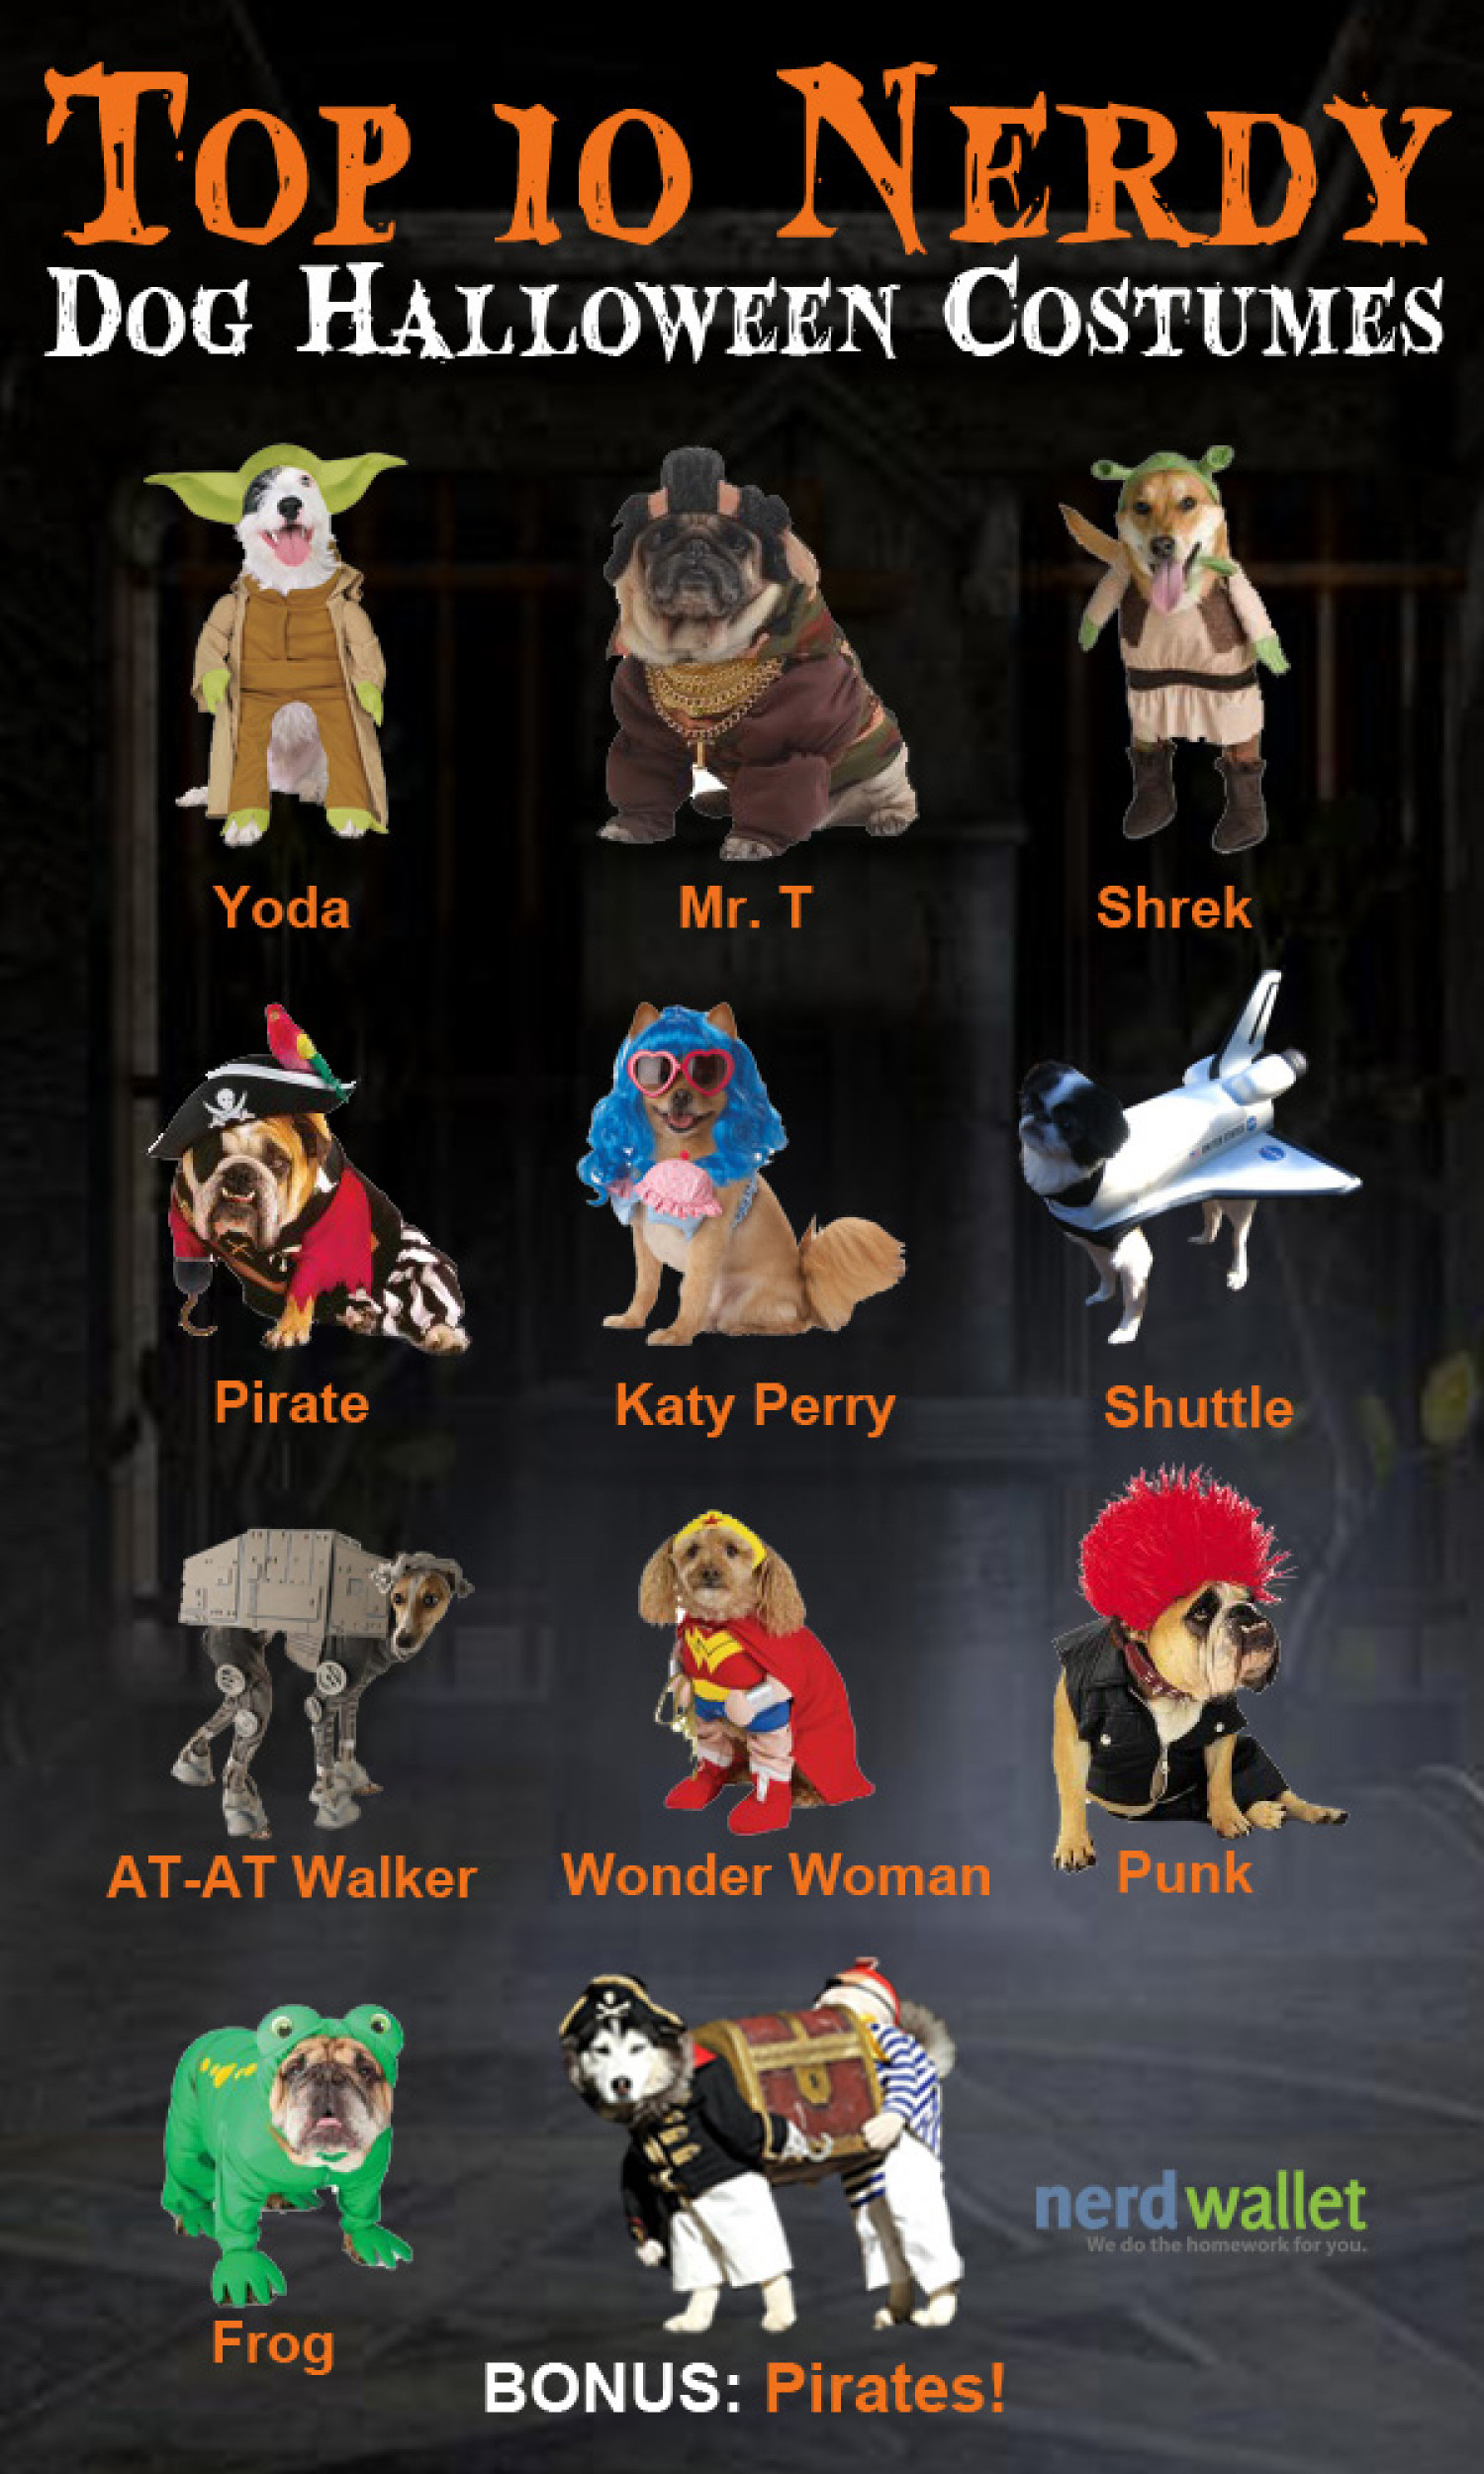 Top 10 Nerdy Halloween Costumes For Dogs Infographic